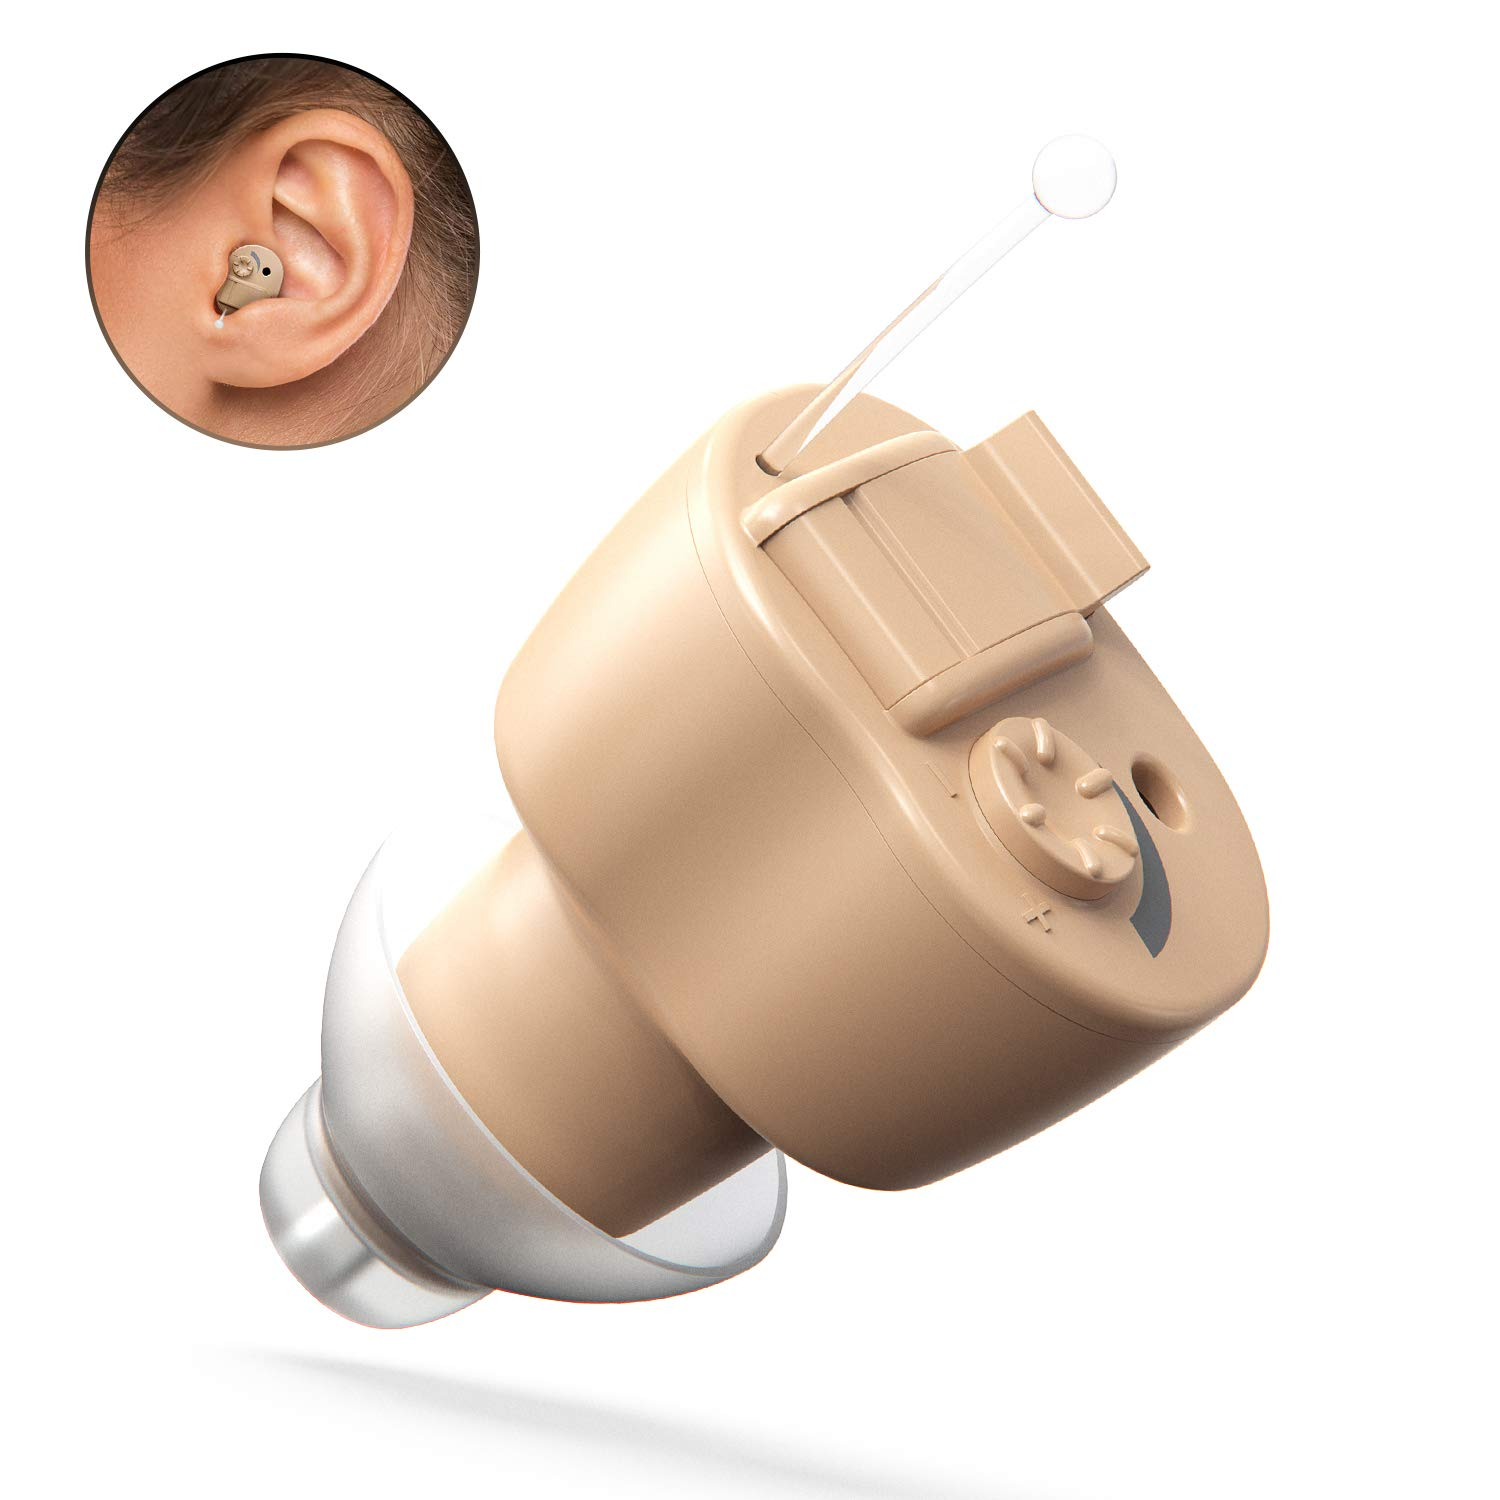 FDA Approved Digital Hearing Amplifier Aid - Super Mini Personal Sound Enhancement Device with Noise Reduction for Adults and Seniors, 2 Batteries and Hearing Aid Cleaning Brush Include by iAid